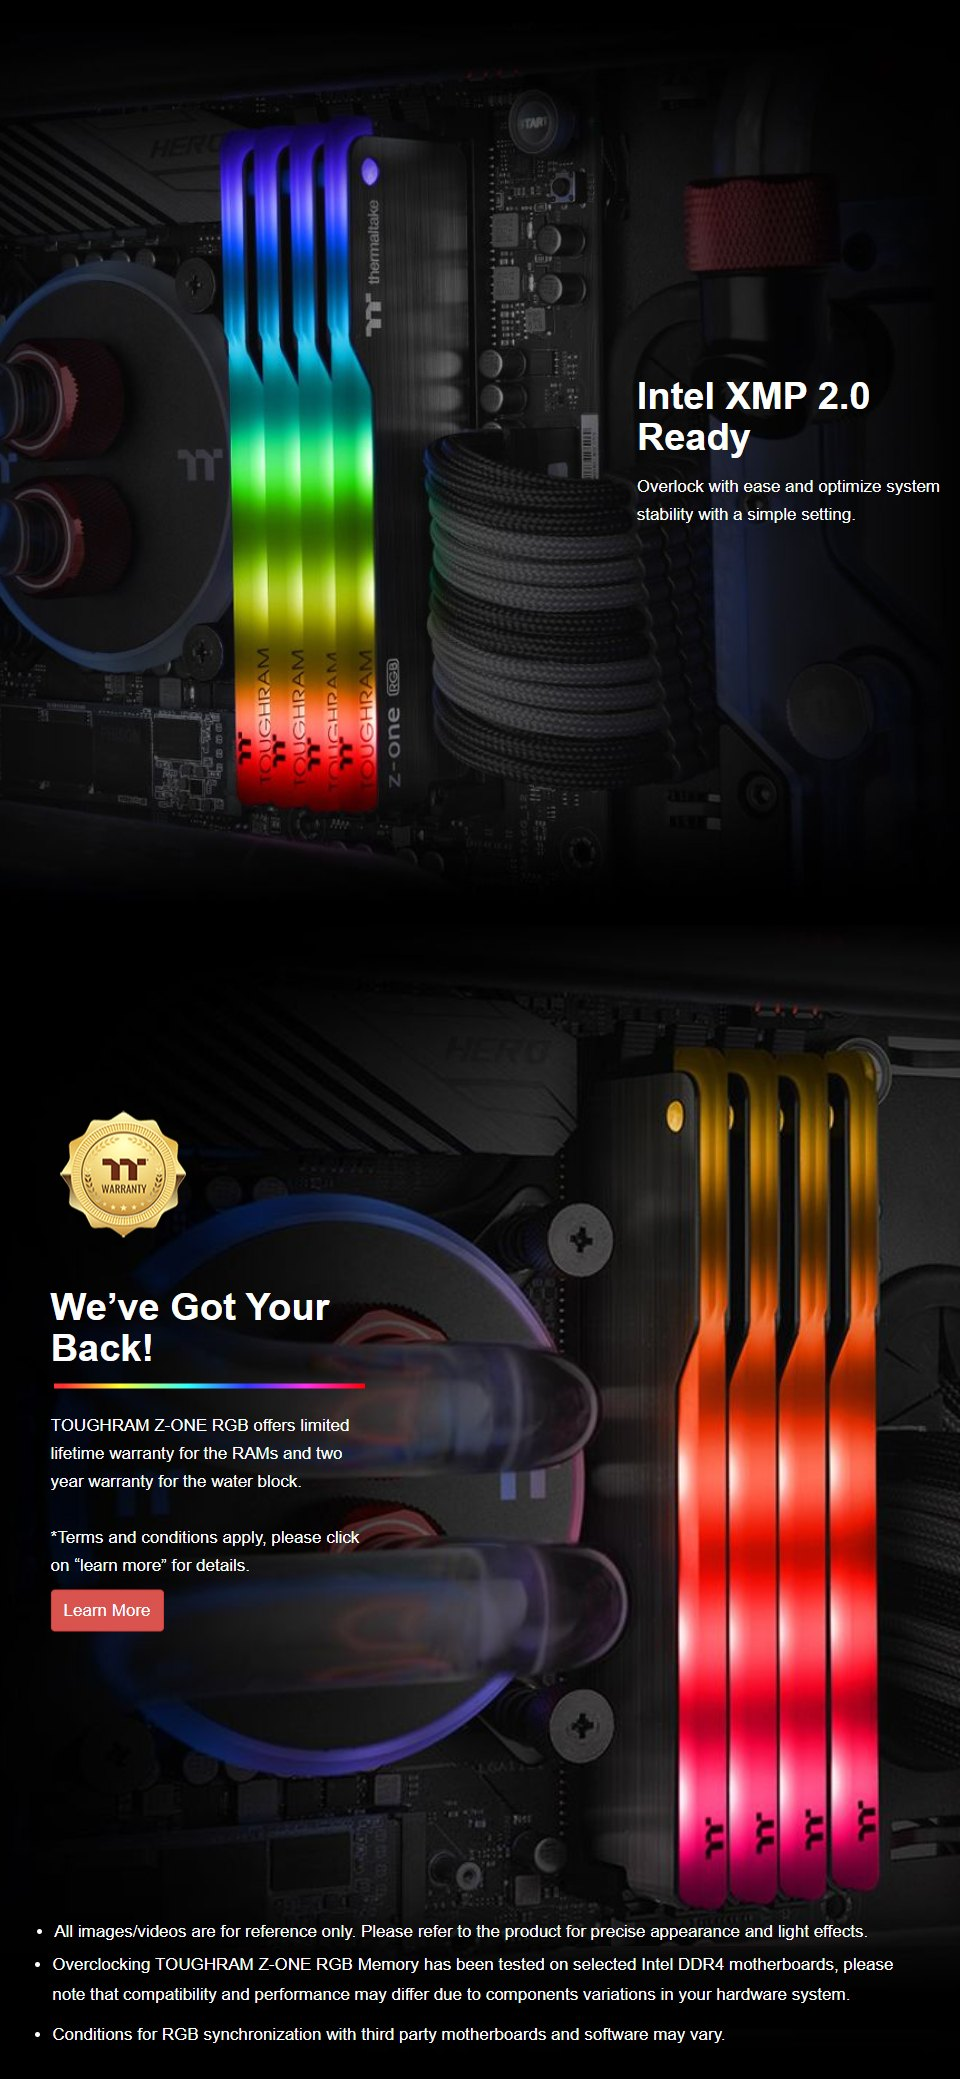 Thermaltake ToughRAM Z-ONE RGB 16GB (2x8GB) 3200MHz CL16 DDR4 features 4